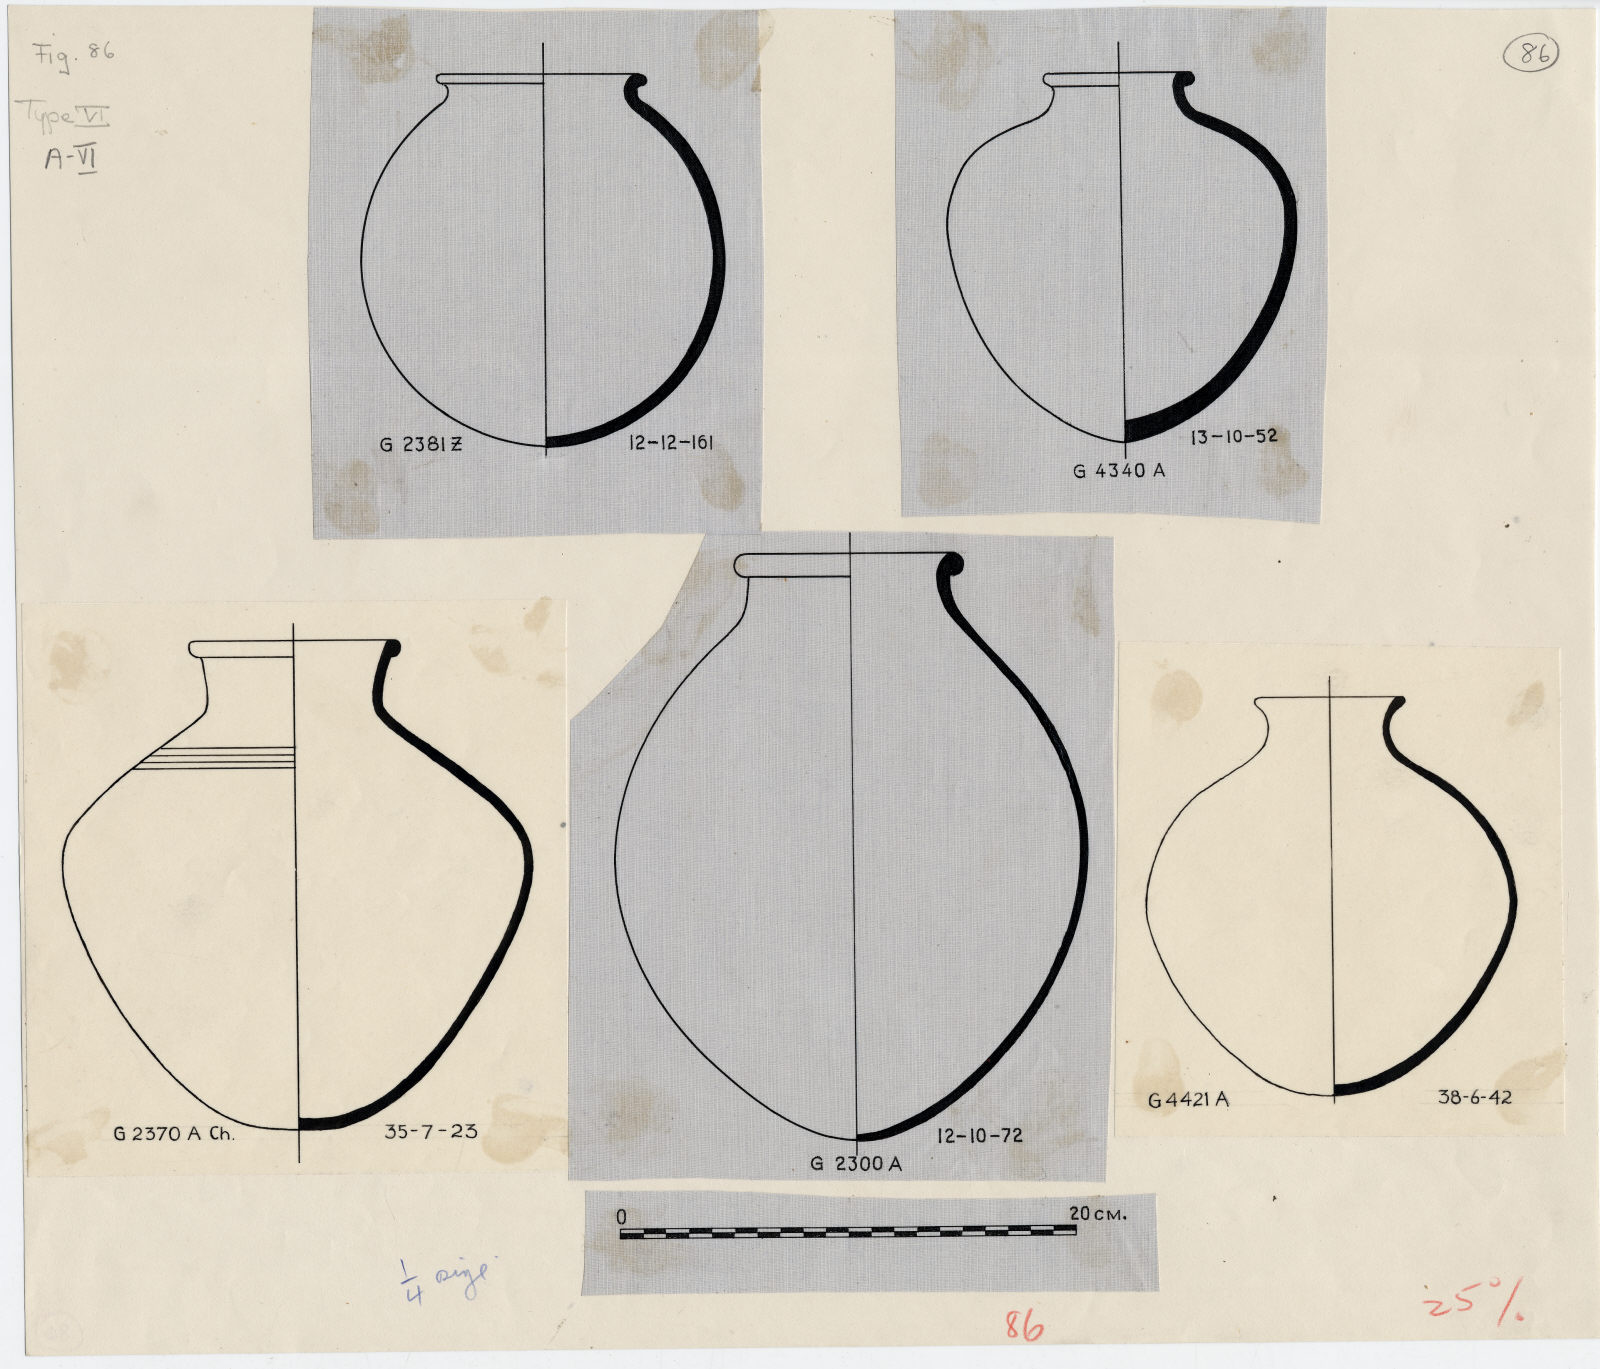 Drawings: Pottery, jars from G 2300 (= G 5190) A; G 2381, Shaft Z; G 4340, Shaft A; G 4421, Shaft A